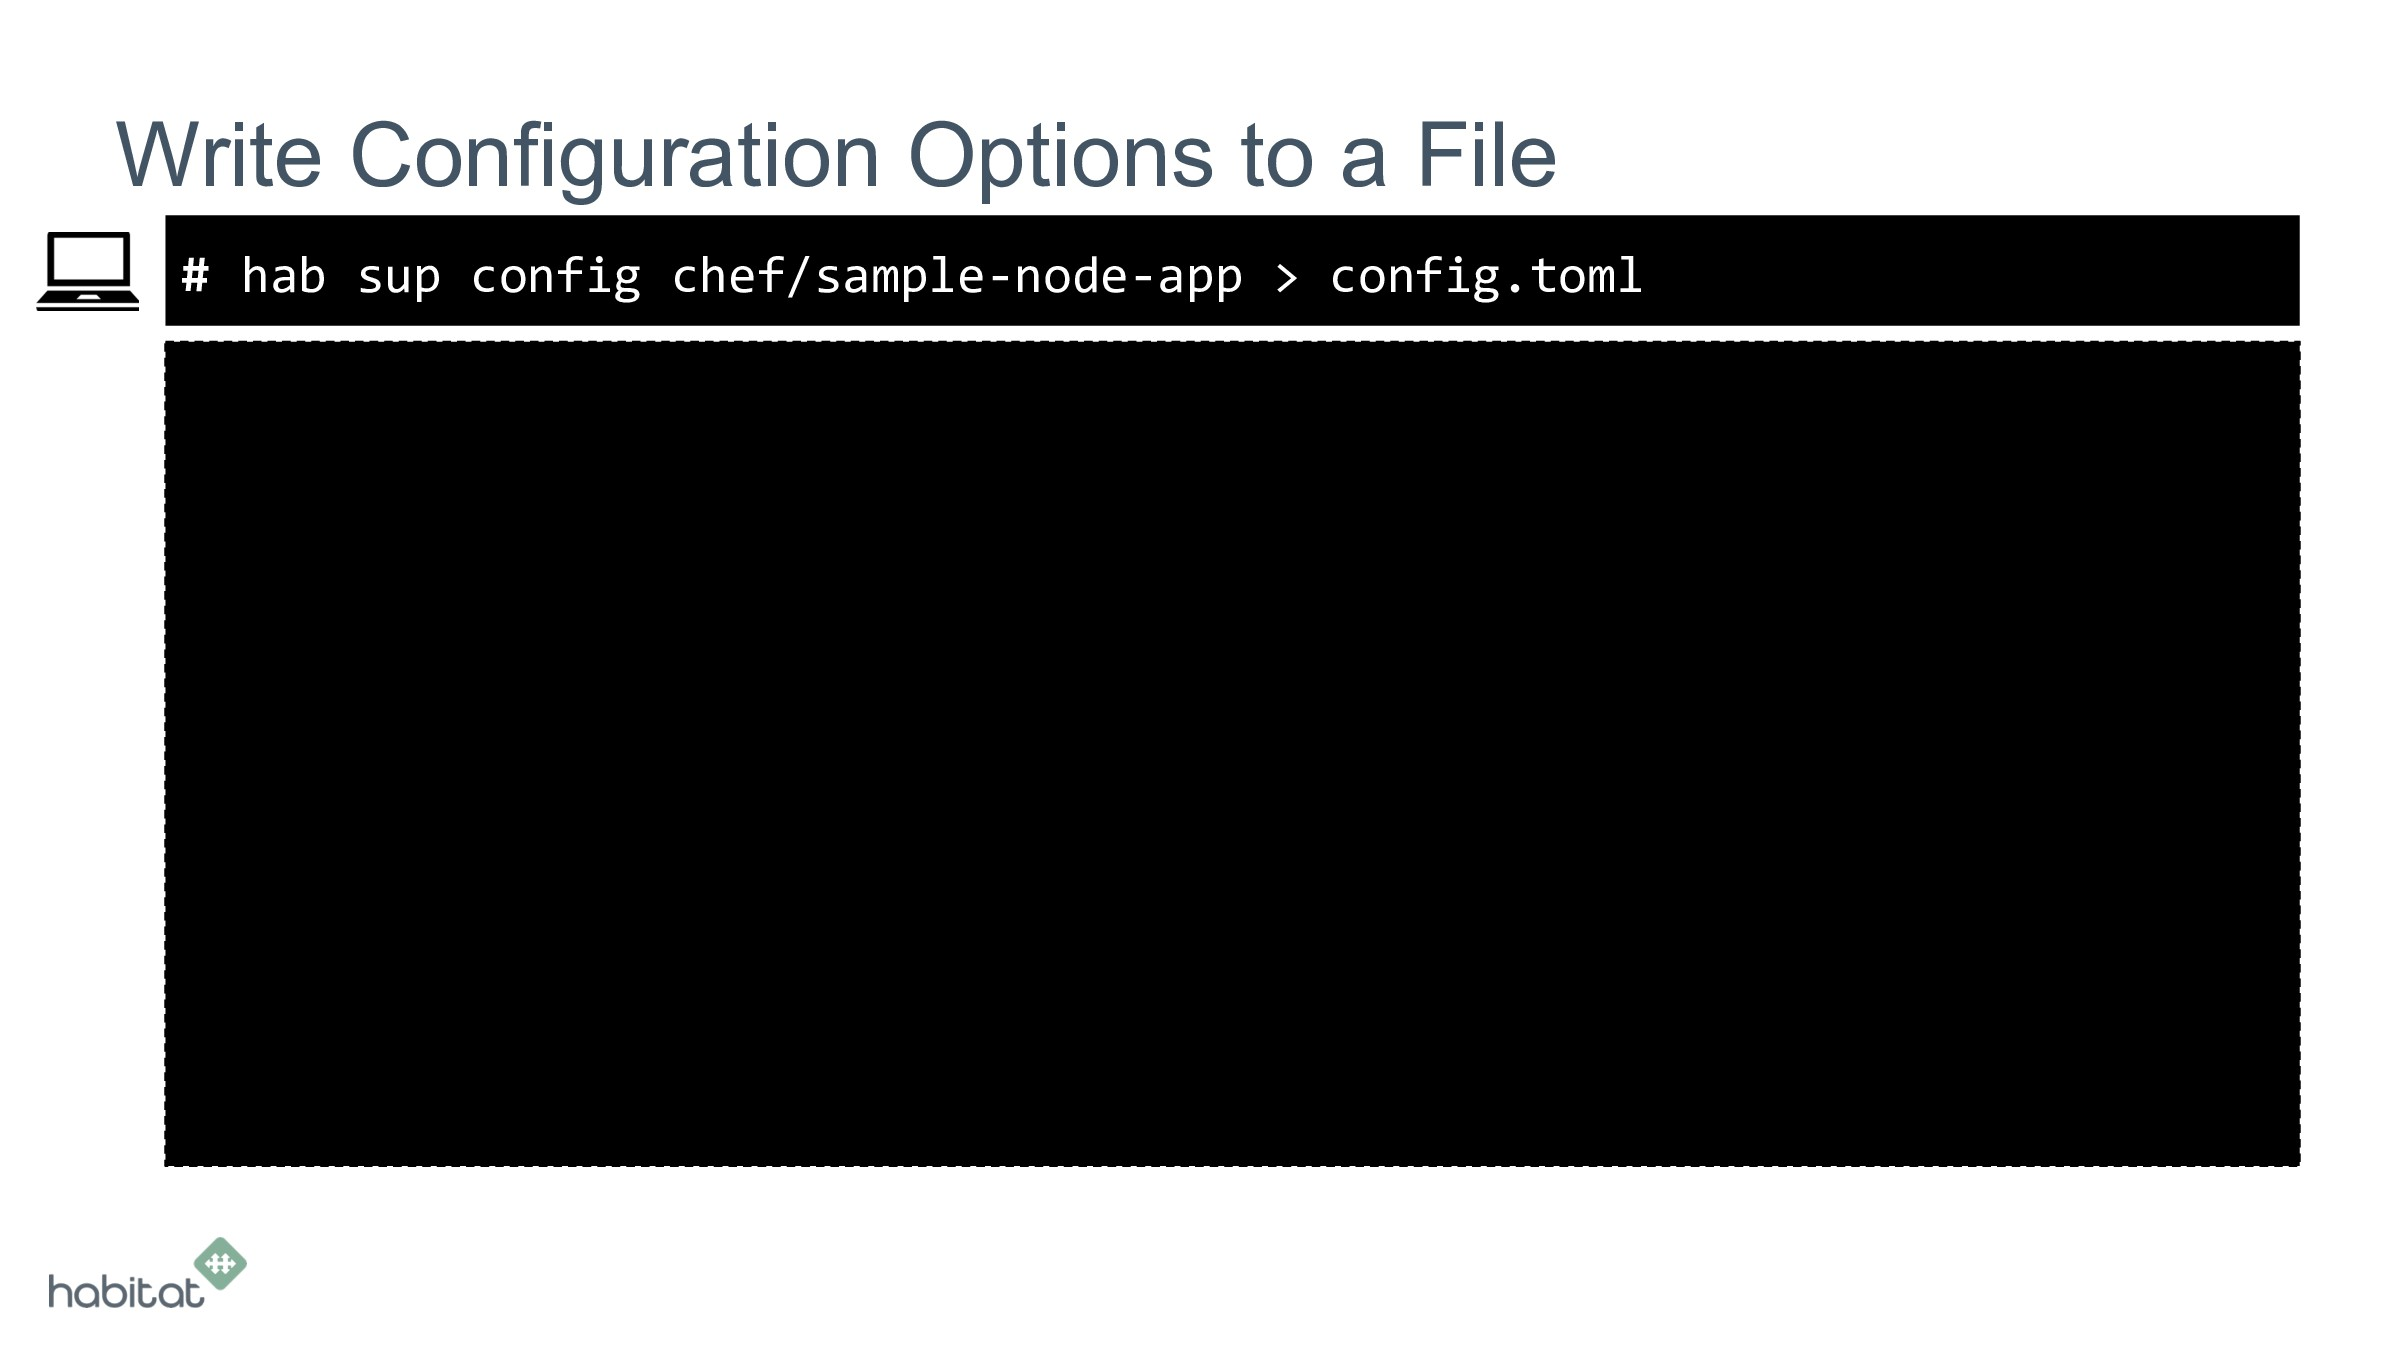 # Write Configuration Options to a File hab sup...